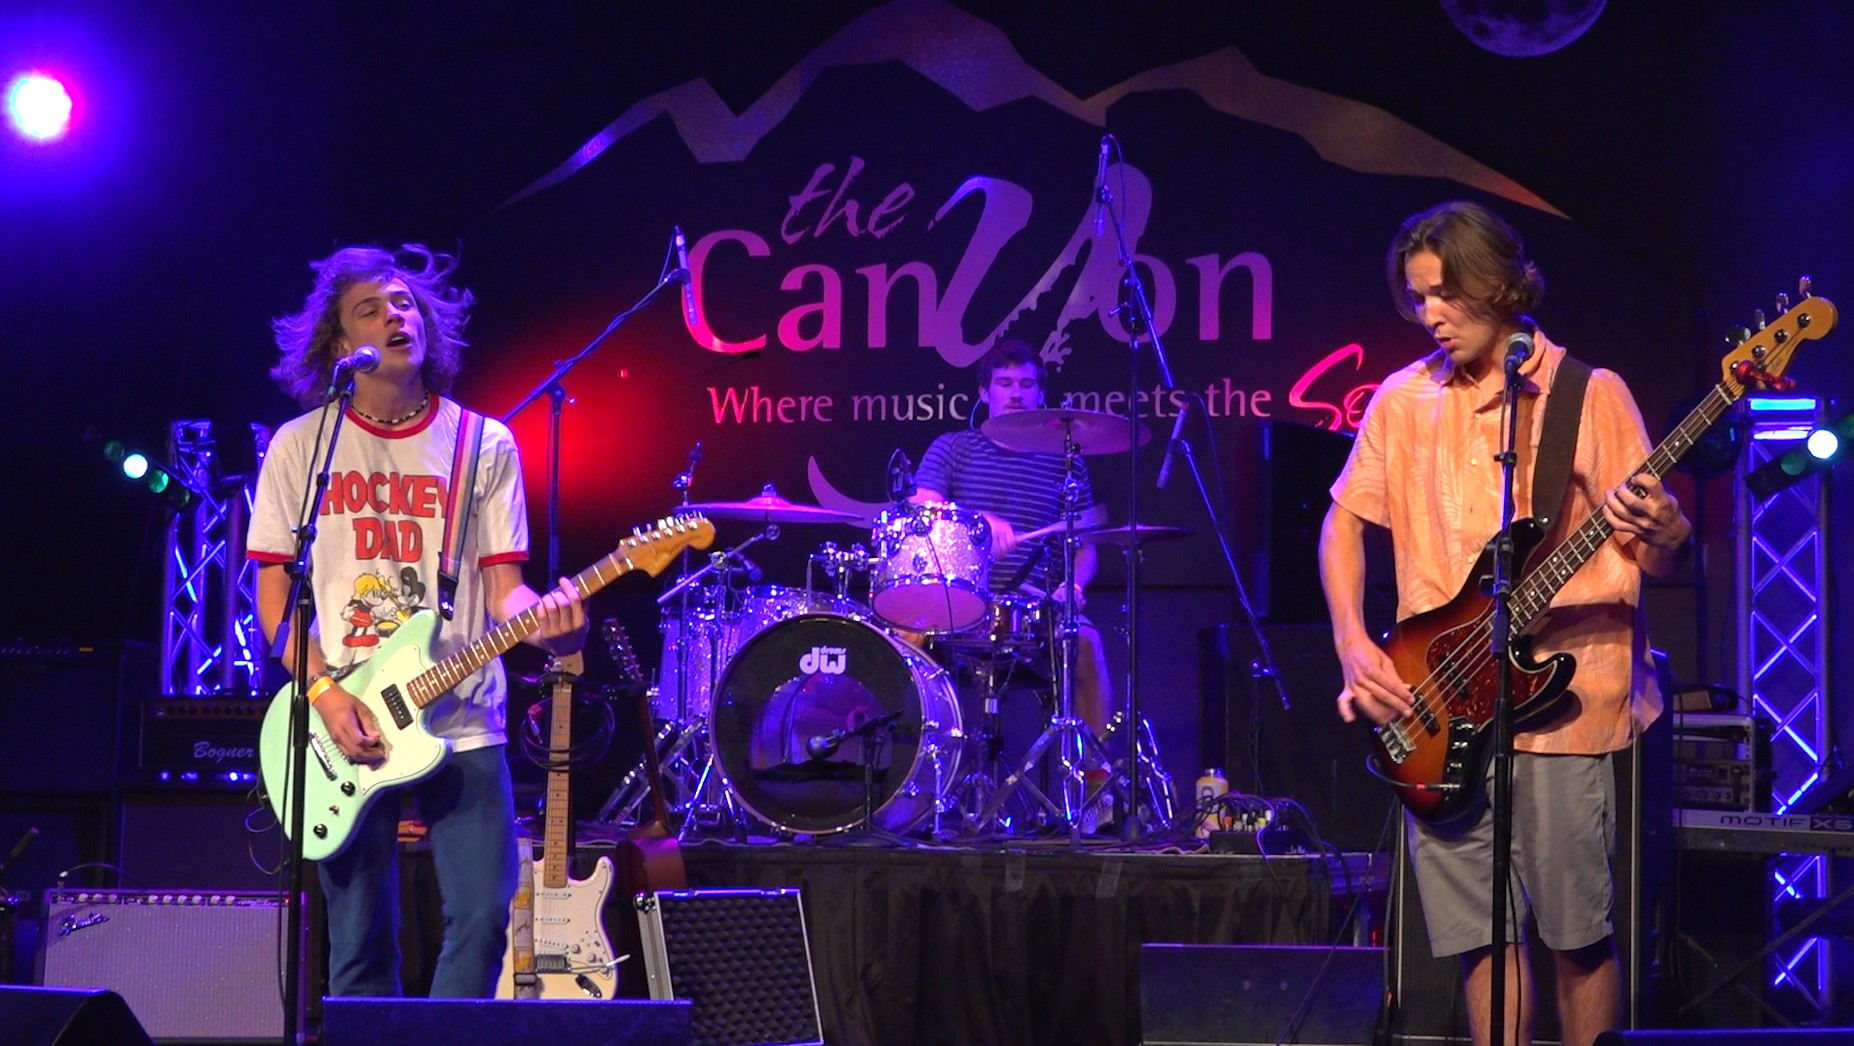 The band Sitting on Stacy performs on stage at The Canyon in Agoura Hills